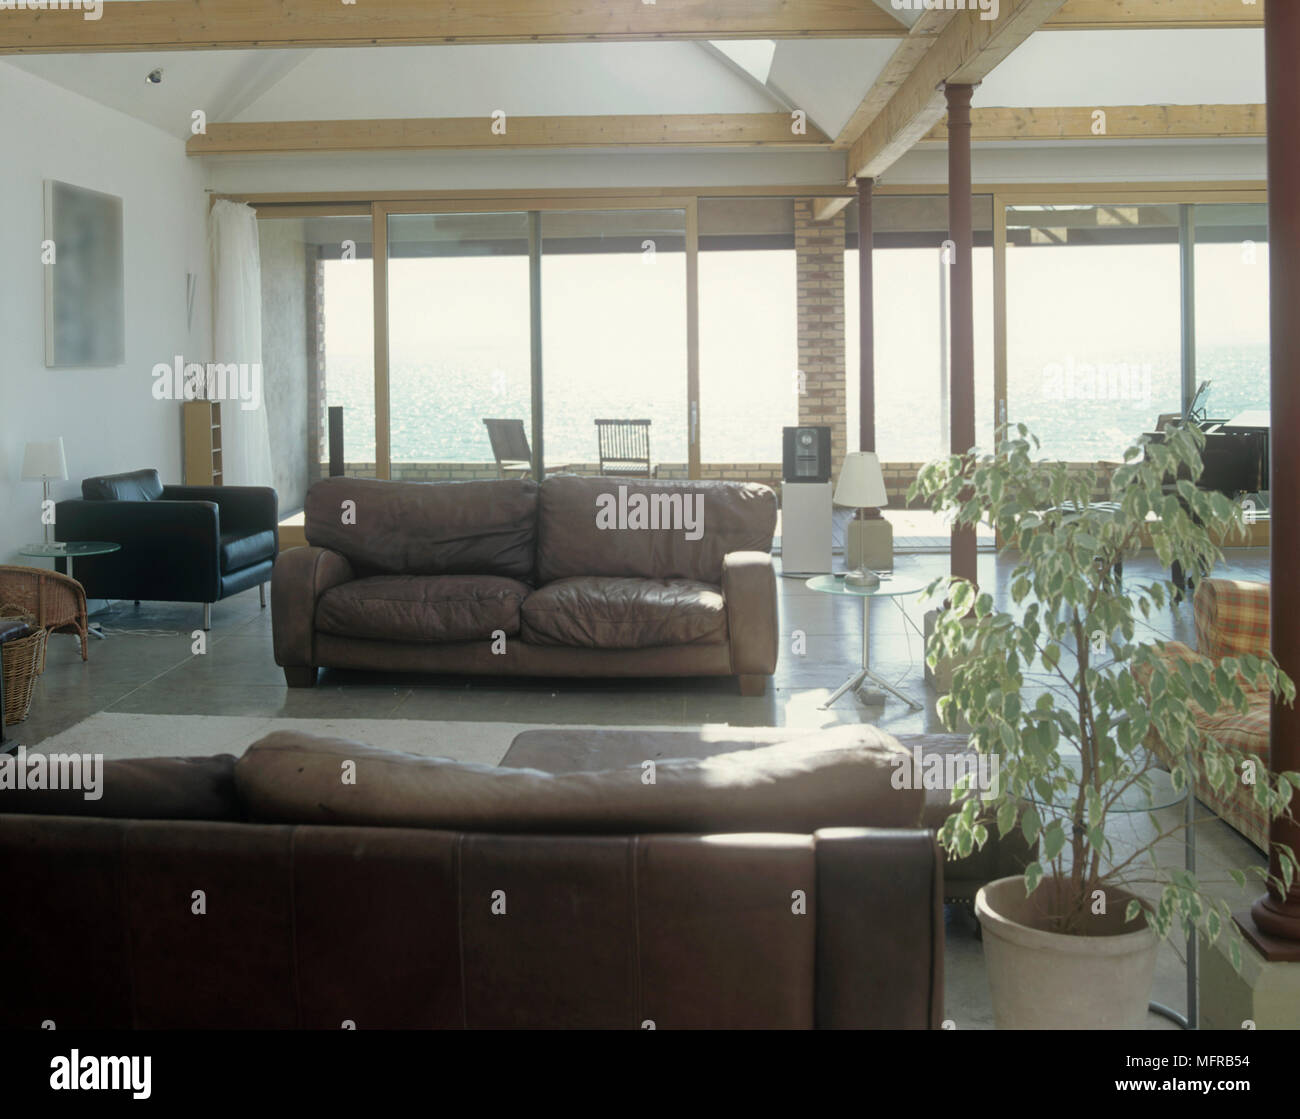 Leather settees in large sitting room with exposed timber railing and large windows - Stock Image